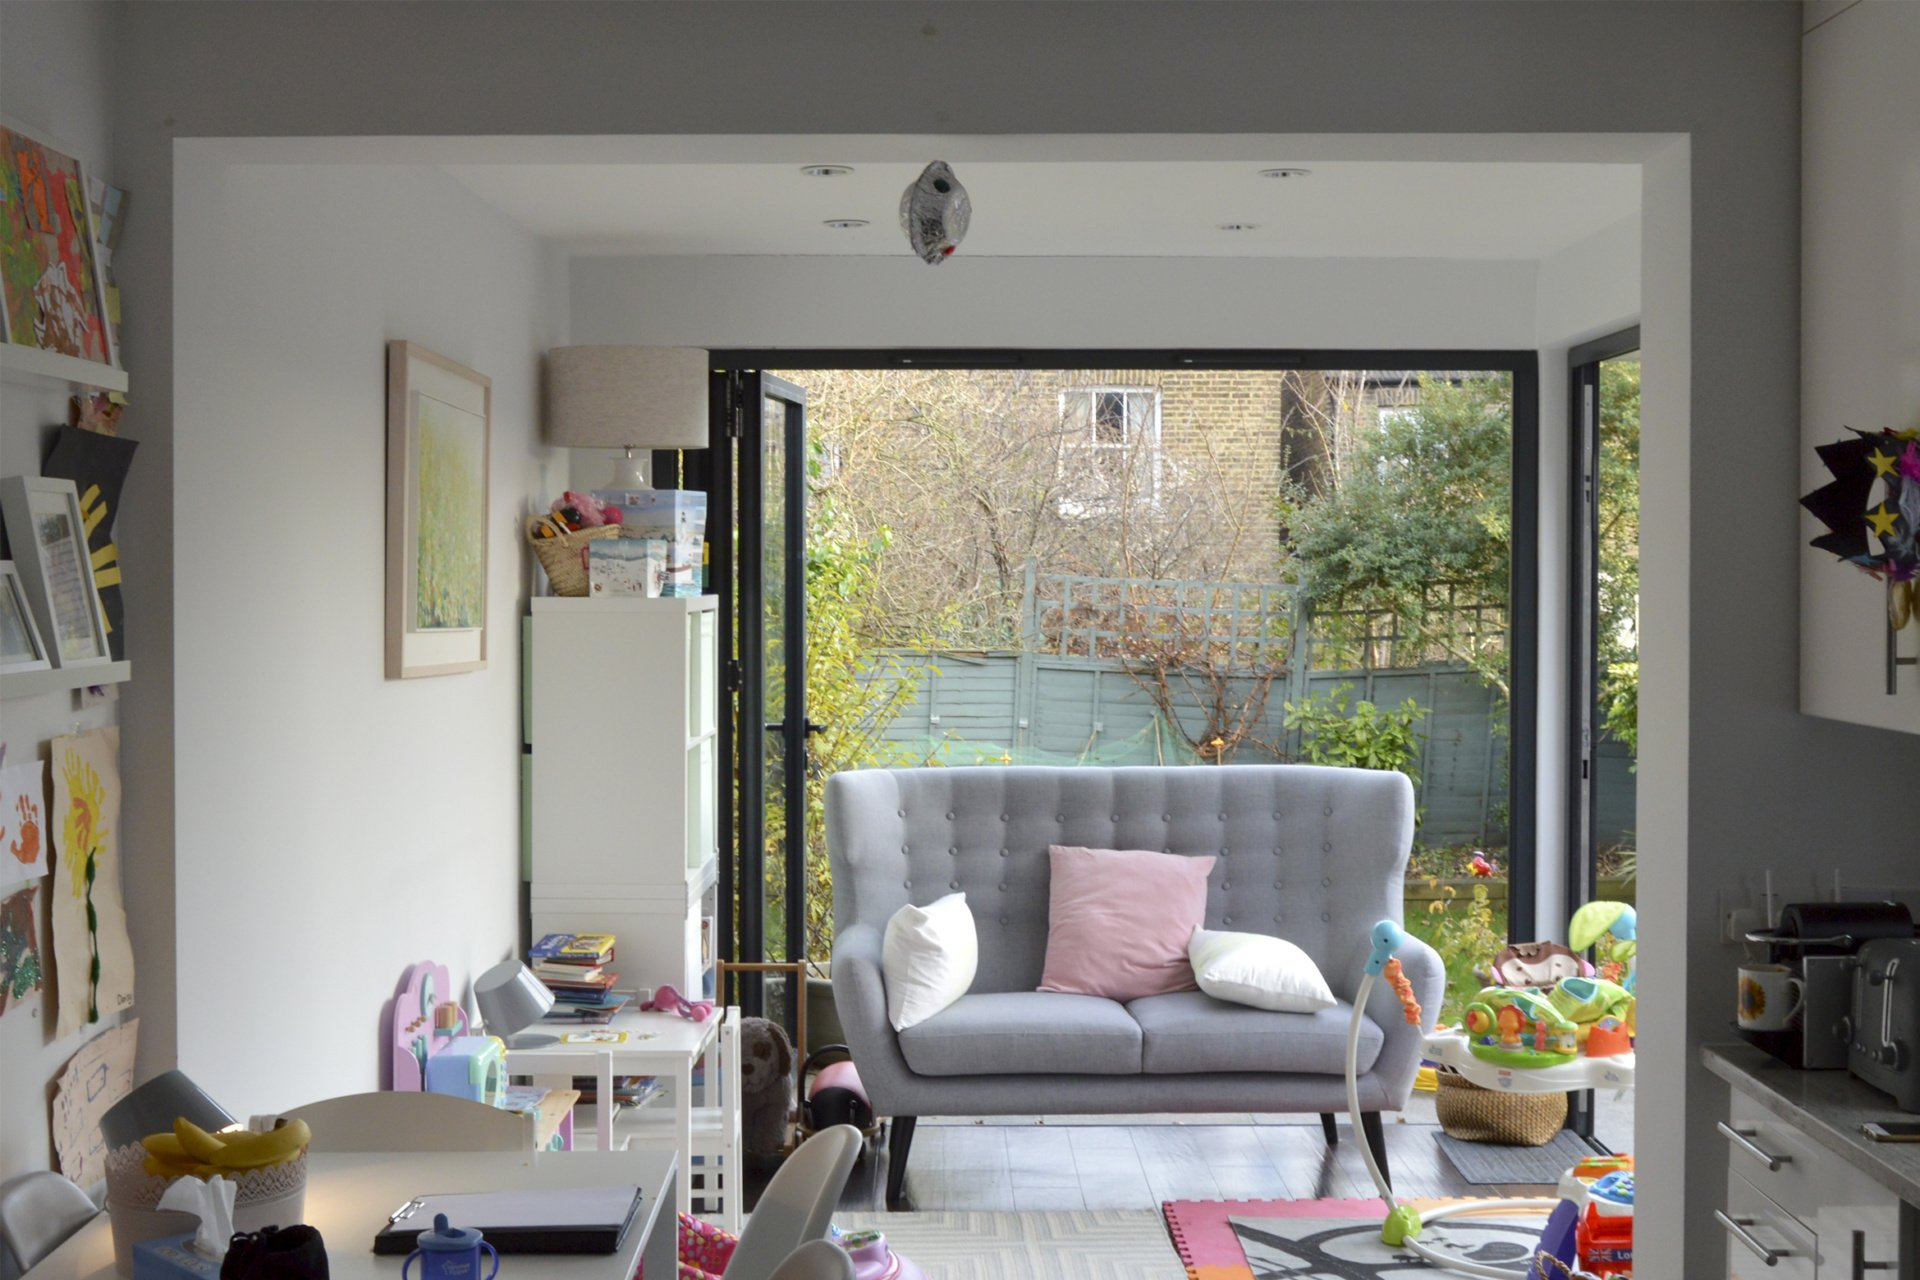 Architect designed rear house extension Penge east Bromley SE26 Play area 1 Penge East, Bromley SE26 | Rear house extension